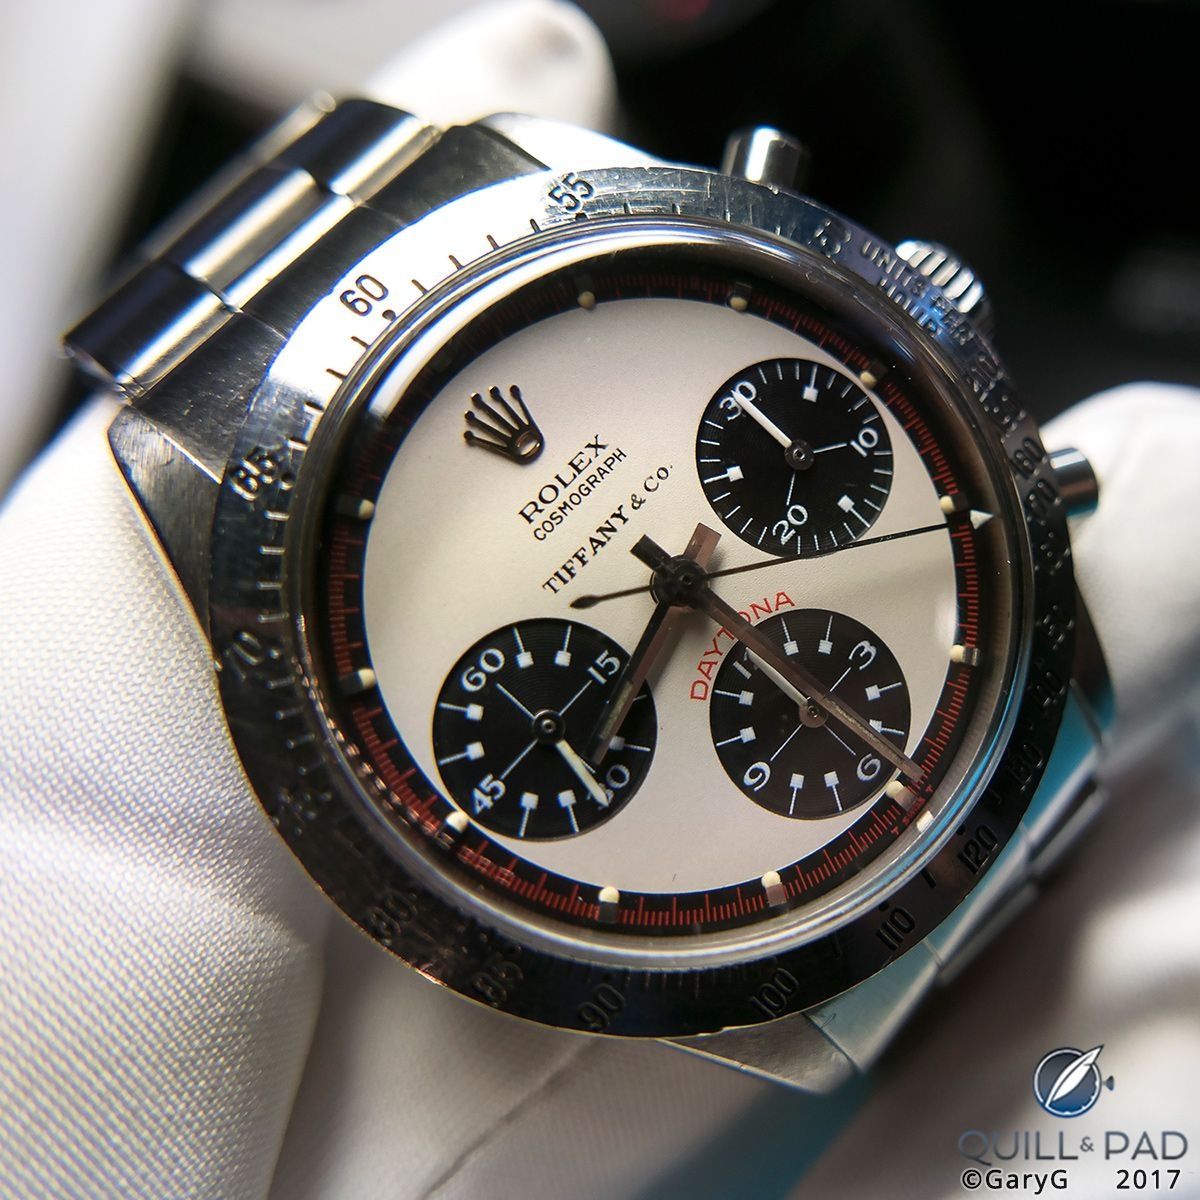 Rolex Paul Newman Daytona With Characteristic Subdial Numerals And